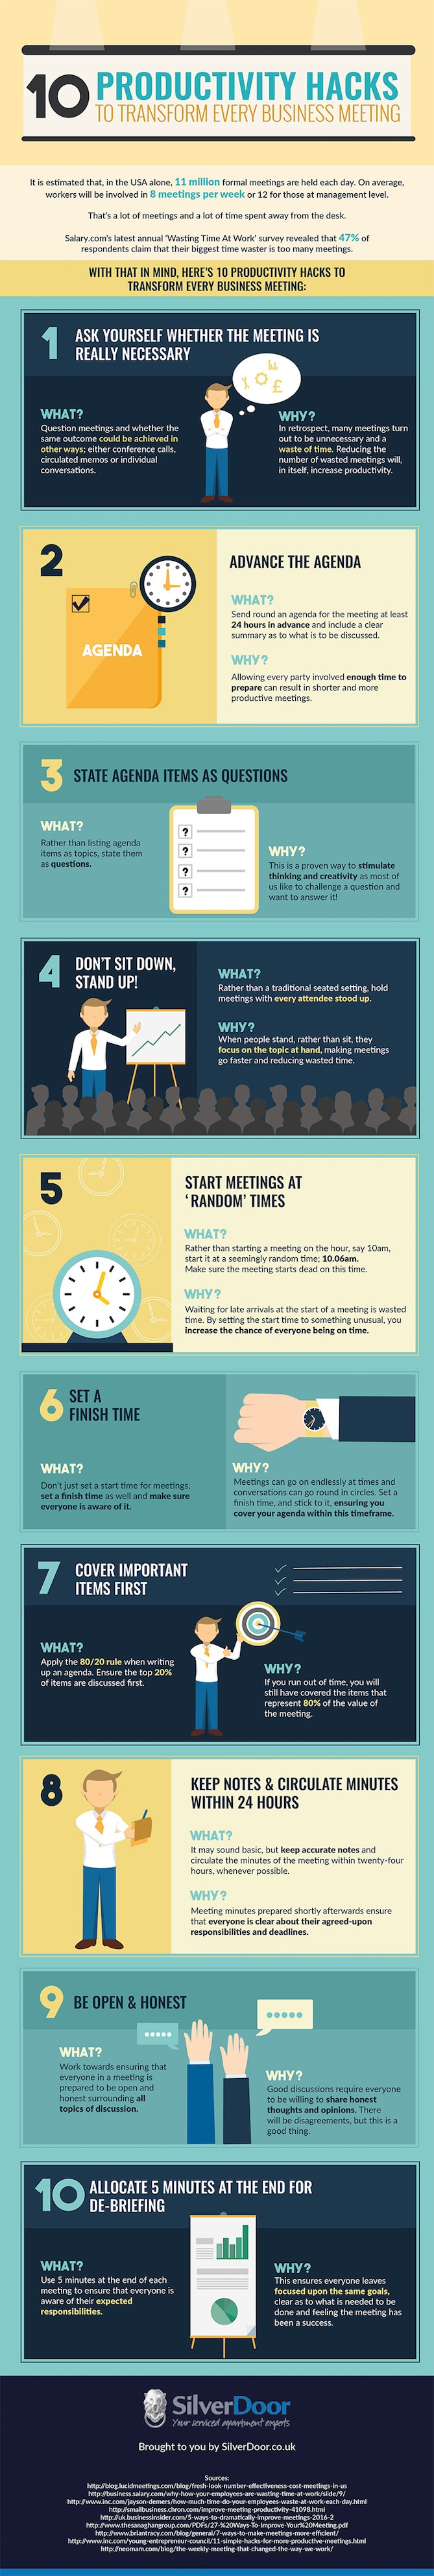 strategies-salespeople-use-run-effective-meetings.jpg